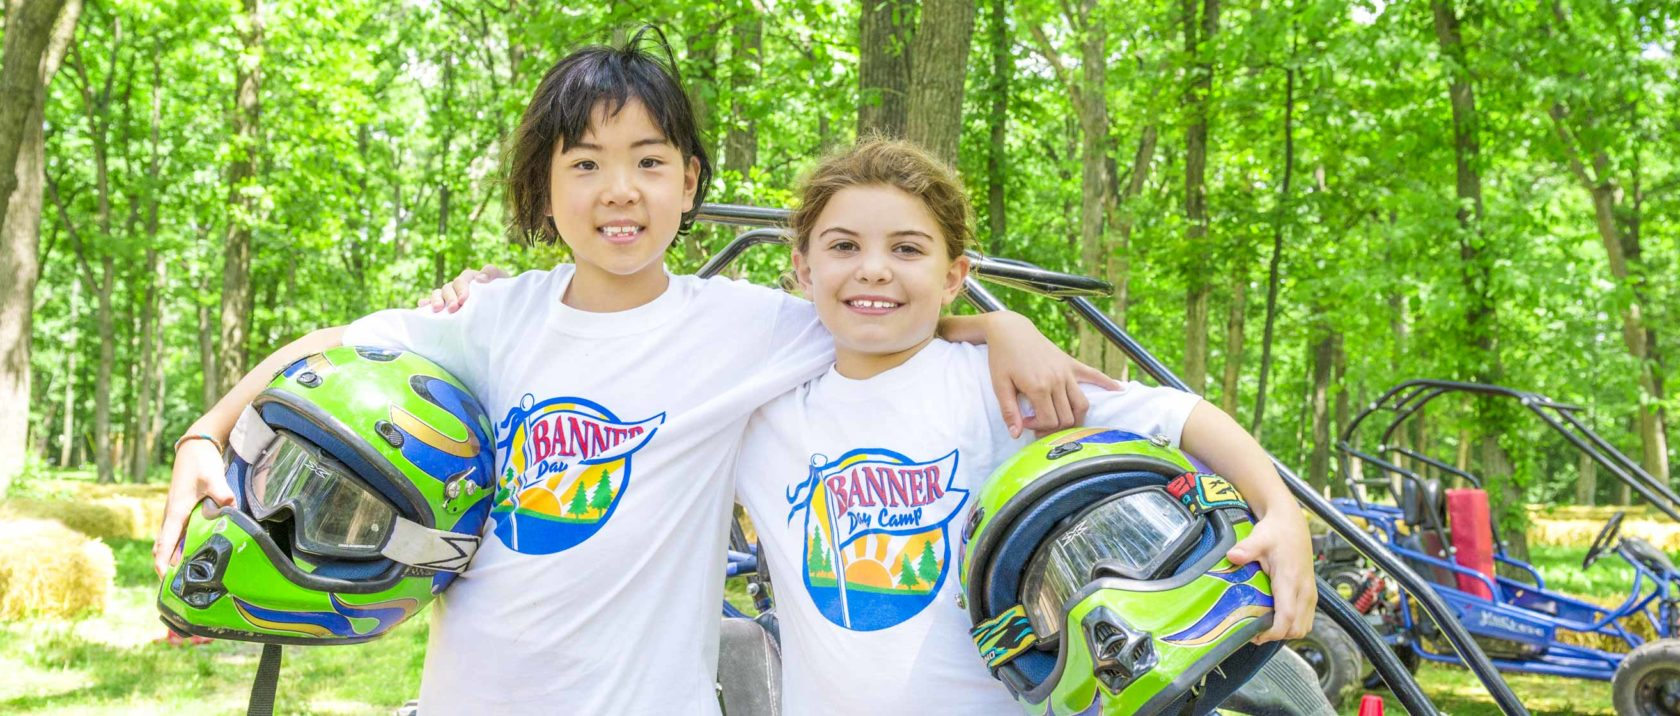 Two girl campers with go kart helmets in their hands smiling together